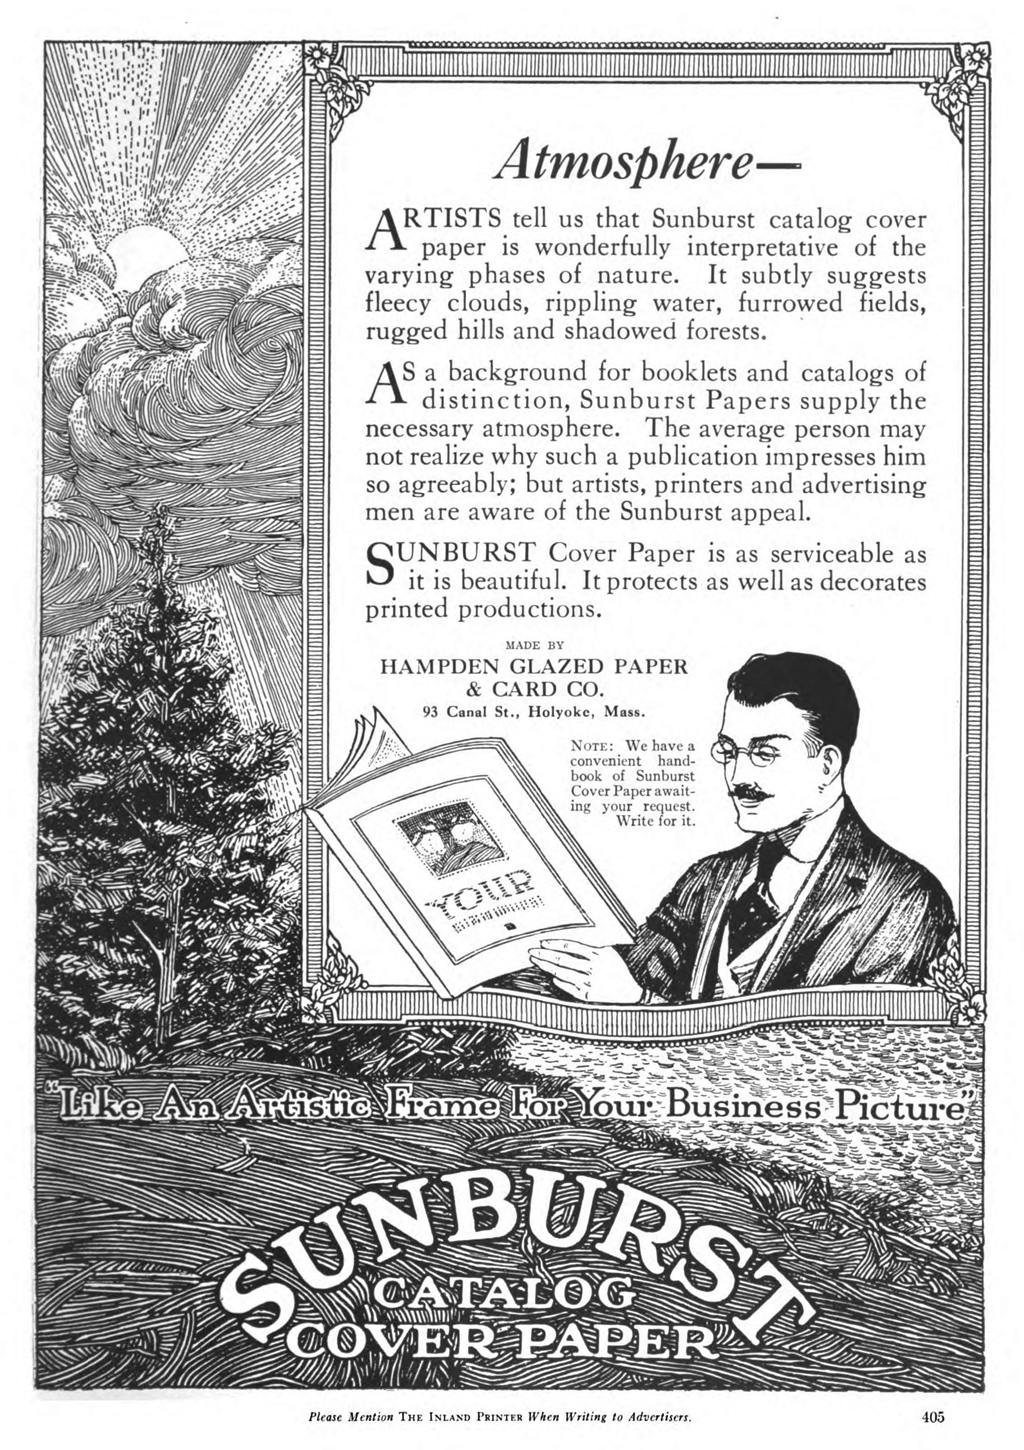 """Atmosphere"" advertisement  for Sunburst Cover Paper by Hampden Glazed Paper & Card Co. in The Inland Printer vol. 67, no. 4 (June 1921)."